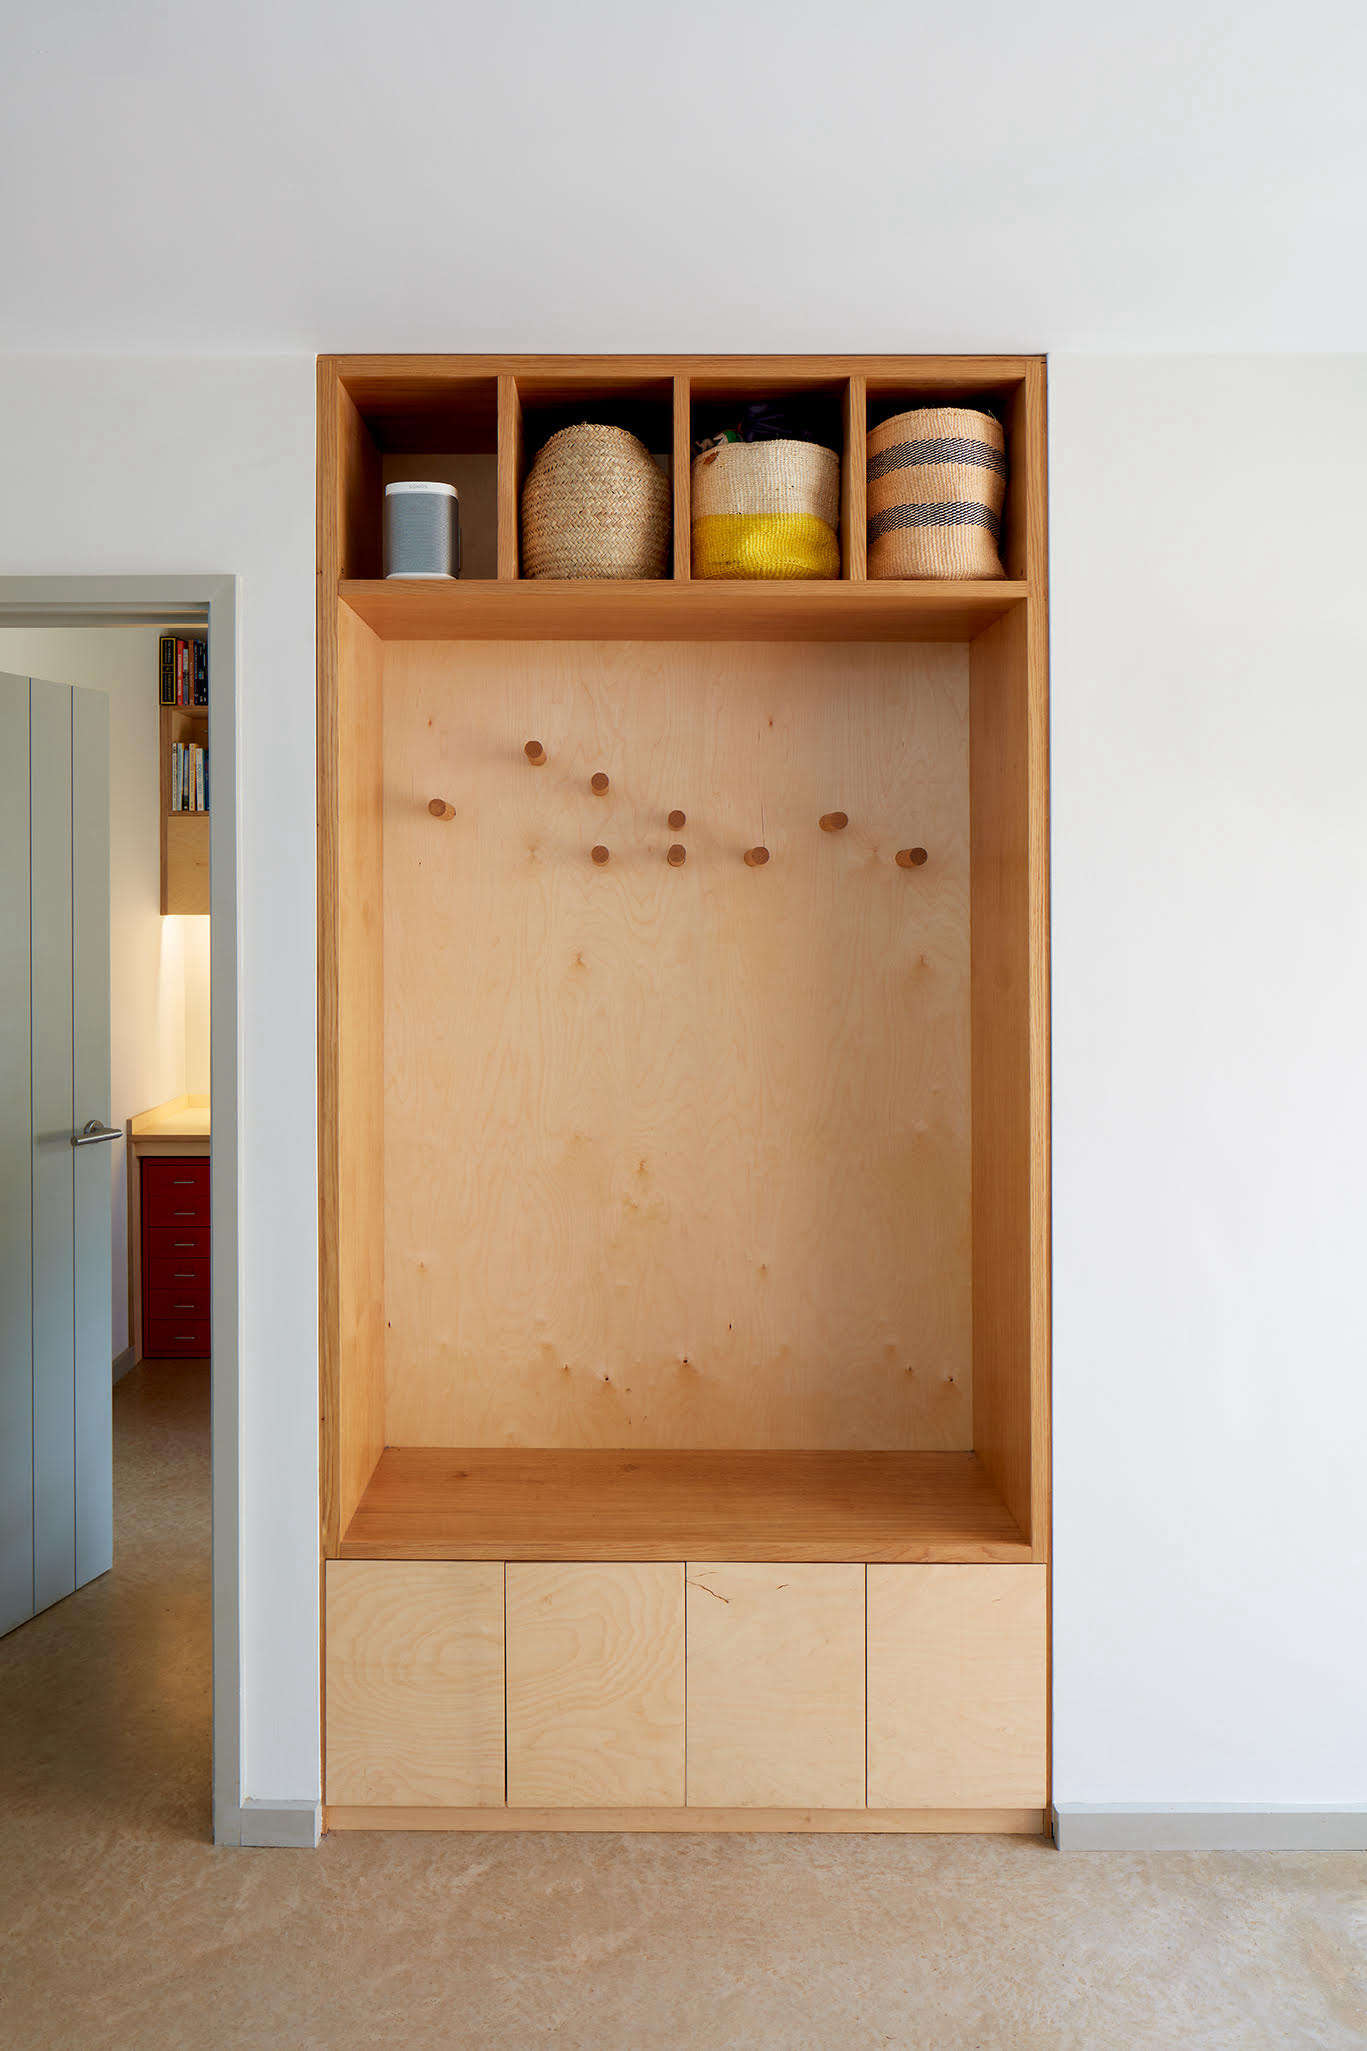 In the entry, a plywood built-in wardrobe features pegs (for hanging outerwear) arranged to replicate the profile of the house.